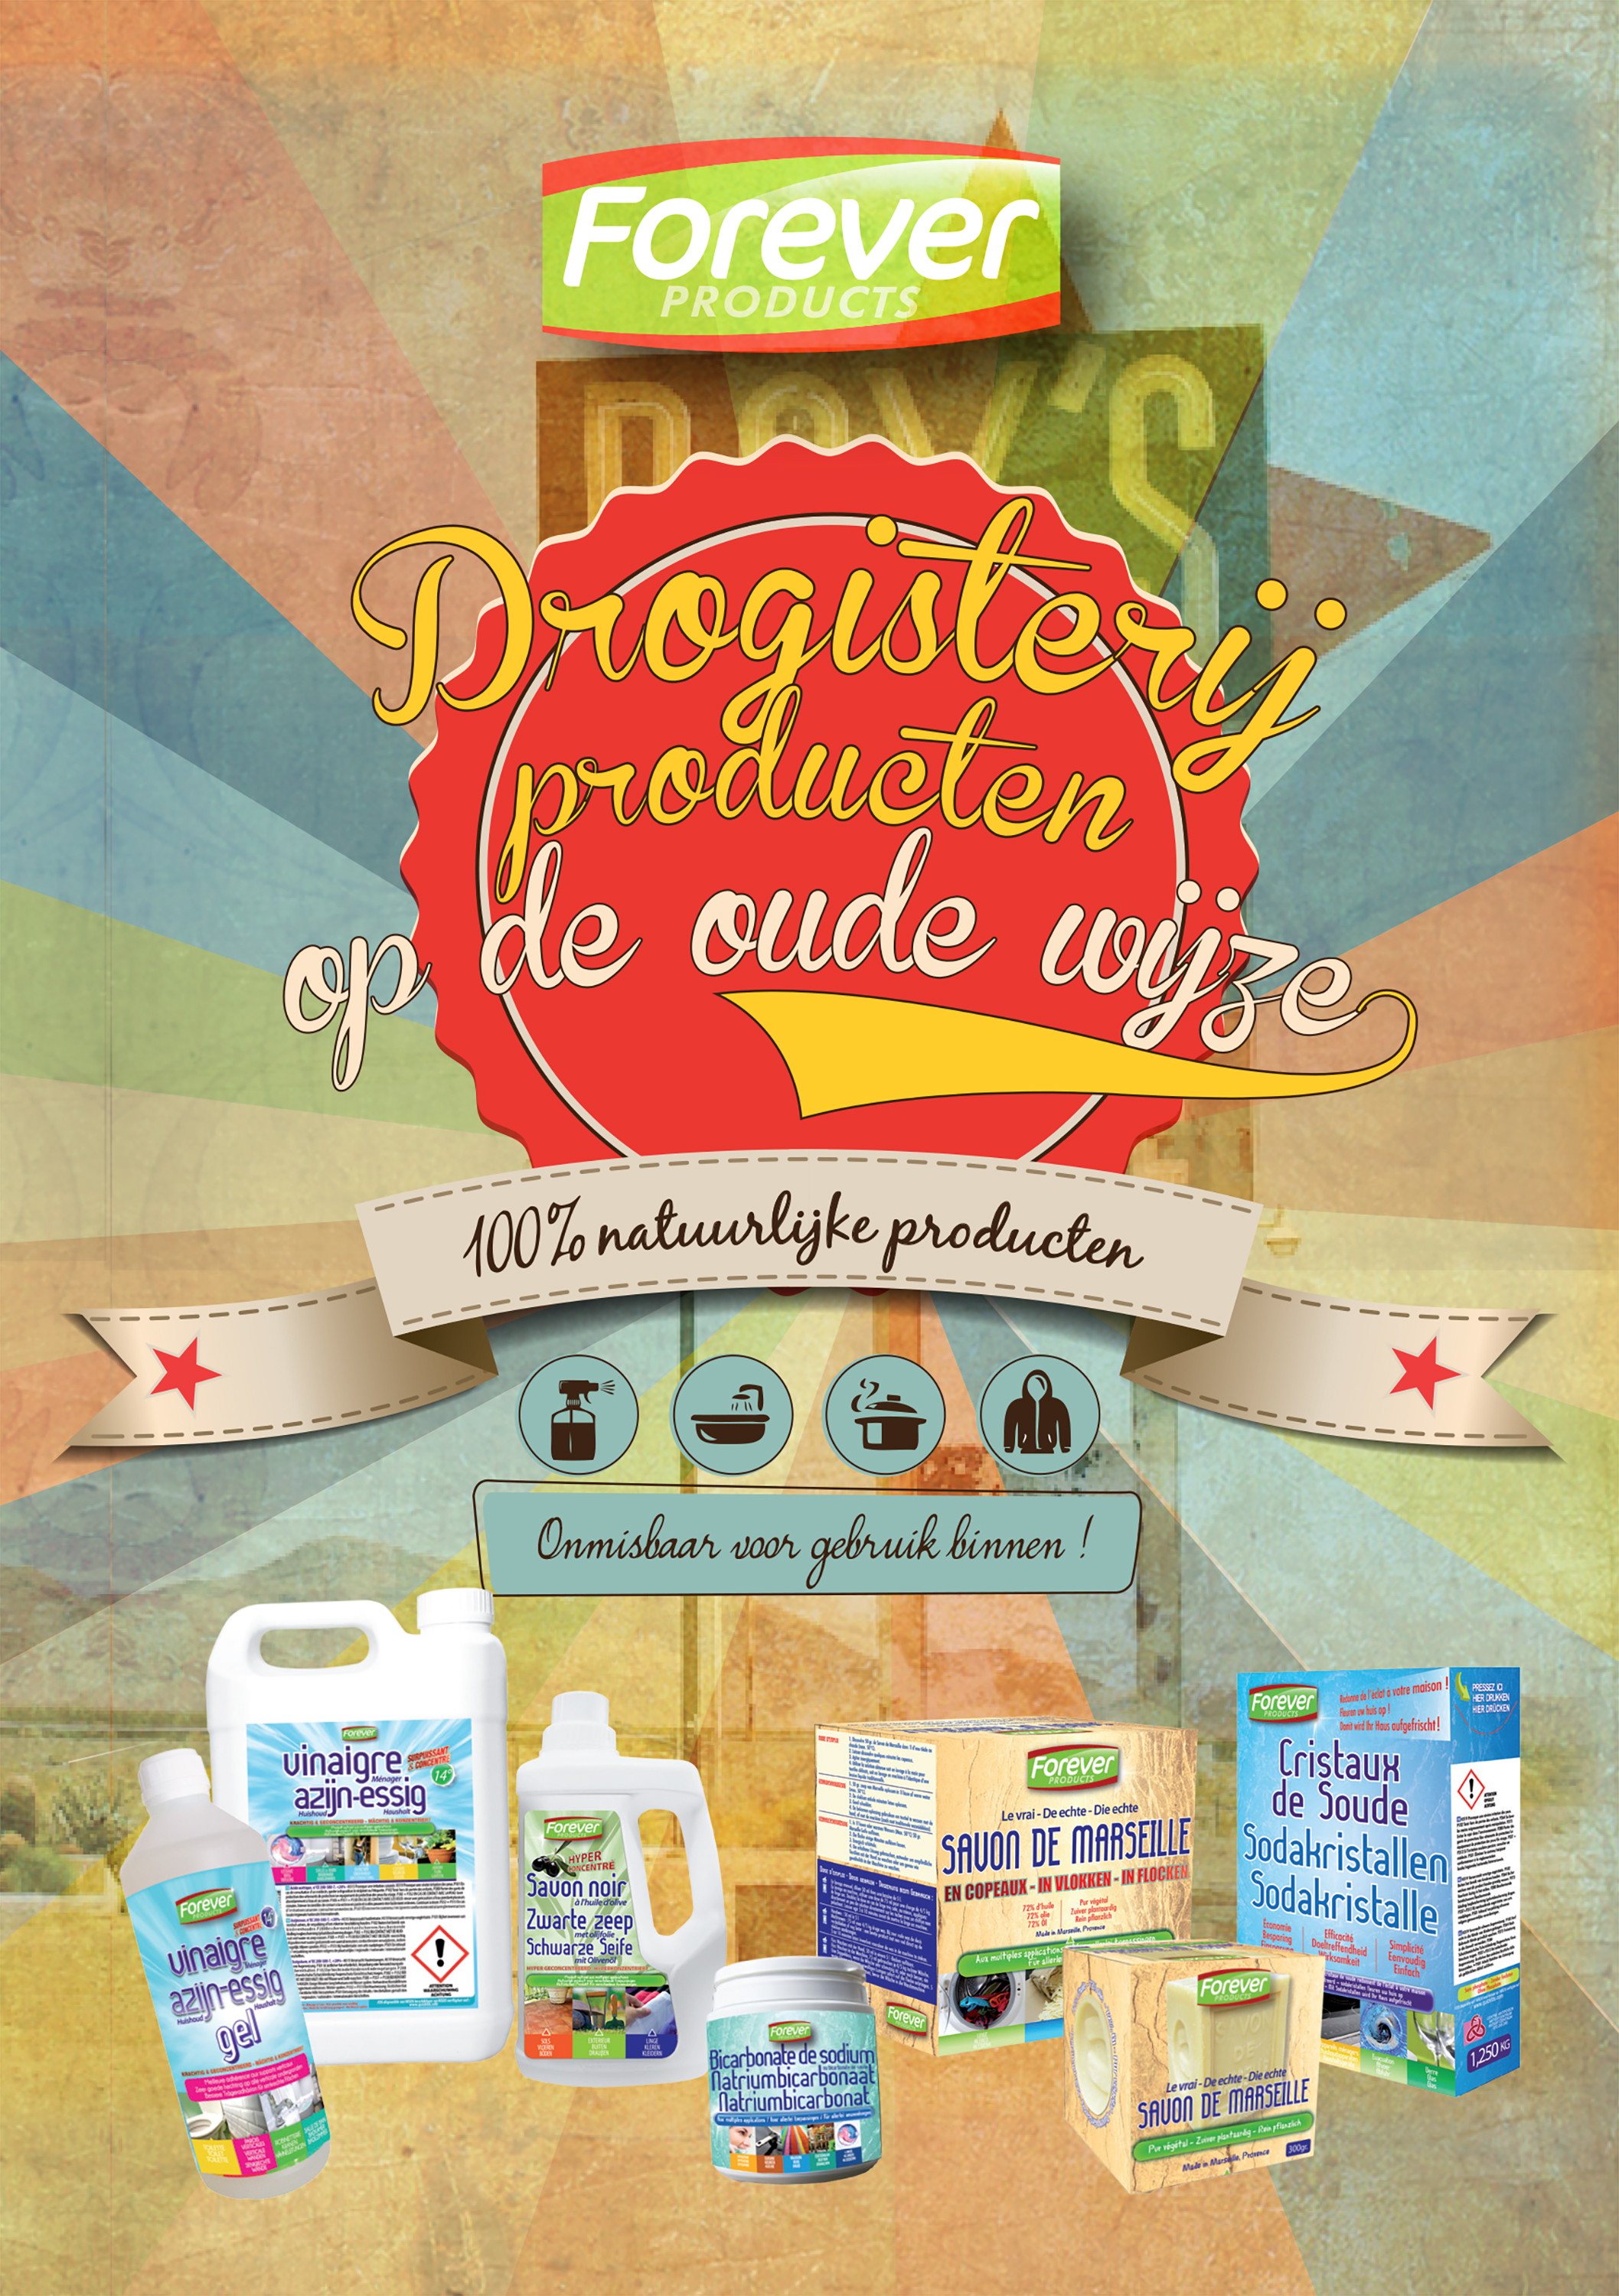 Couverture brochure Droguerie à l'ancienne NL FOREVER PRODUCTS